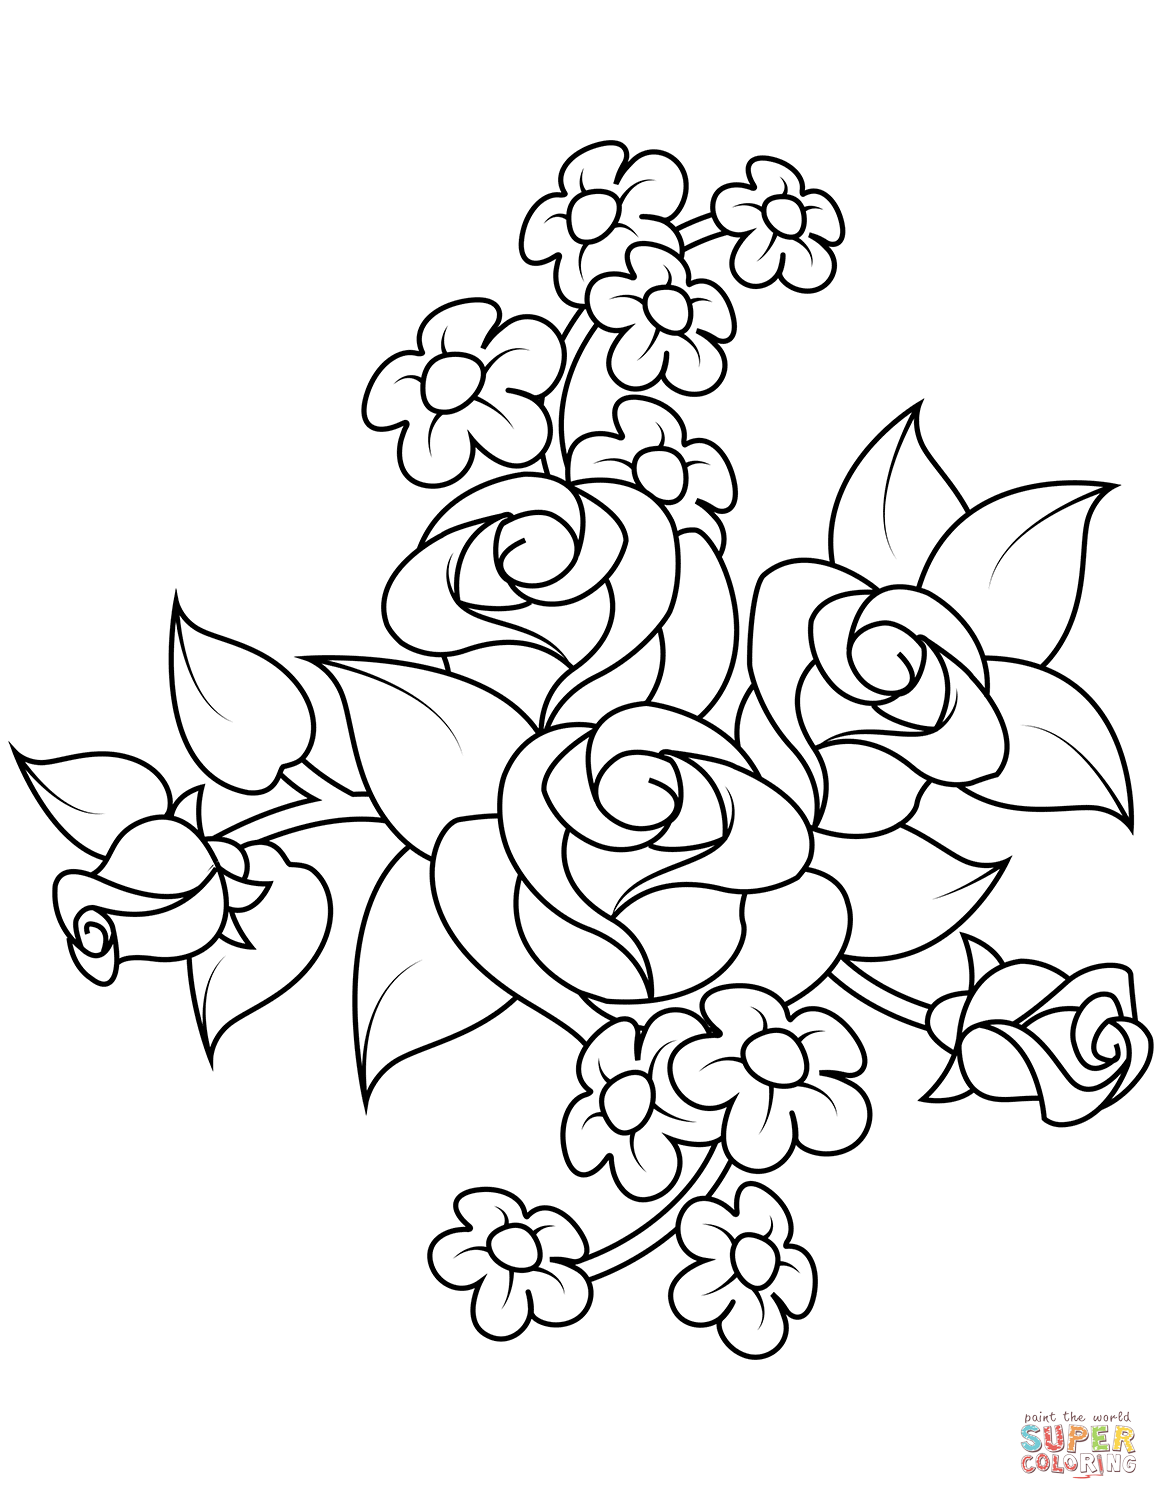 picture of a rose to color free printable rose branch coloring page a color rose of to picture